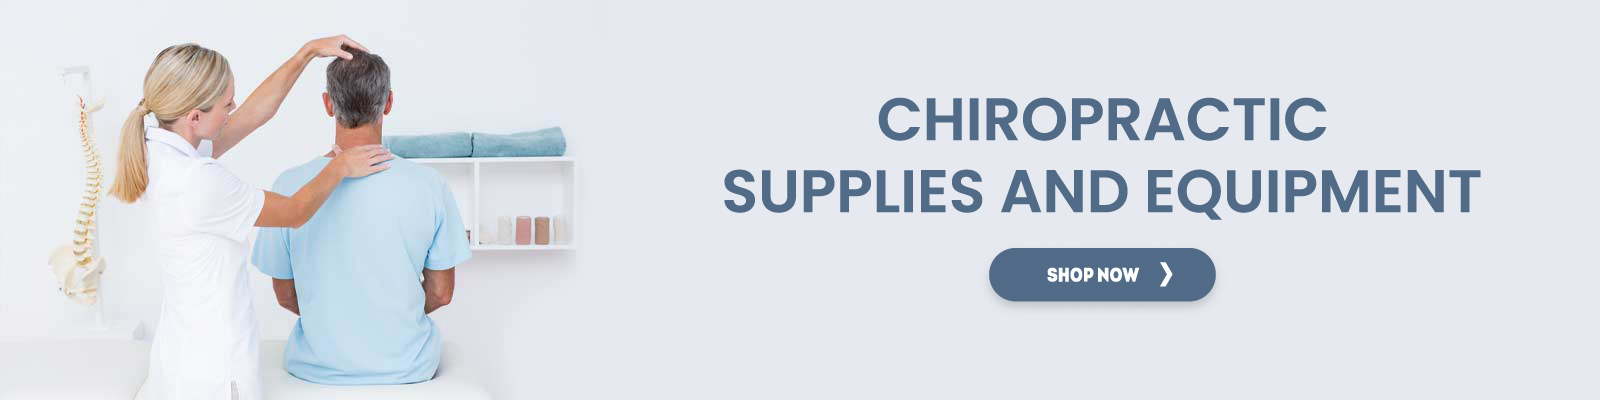 Chiropractic Supplies And Equipments